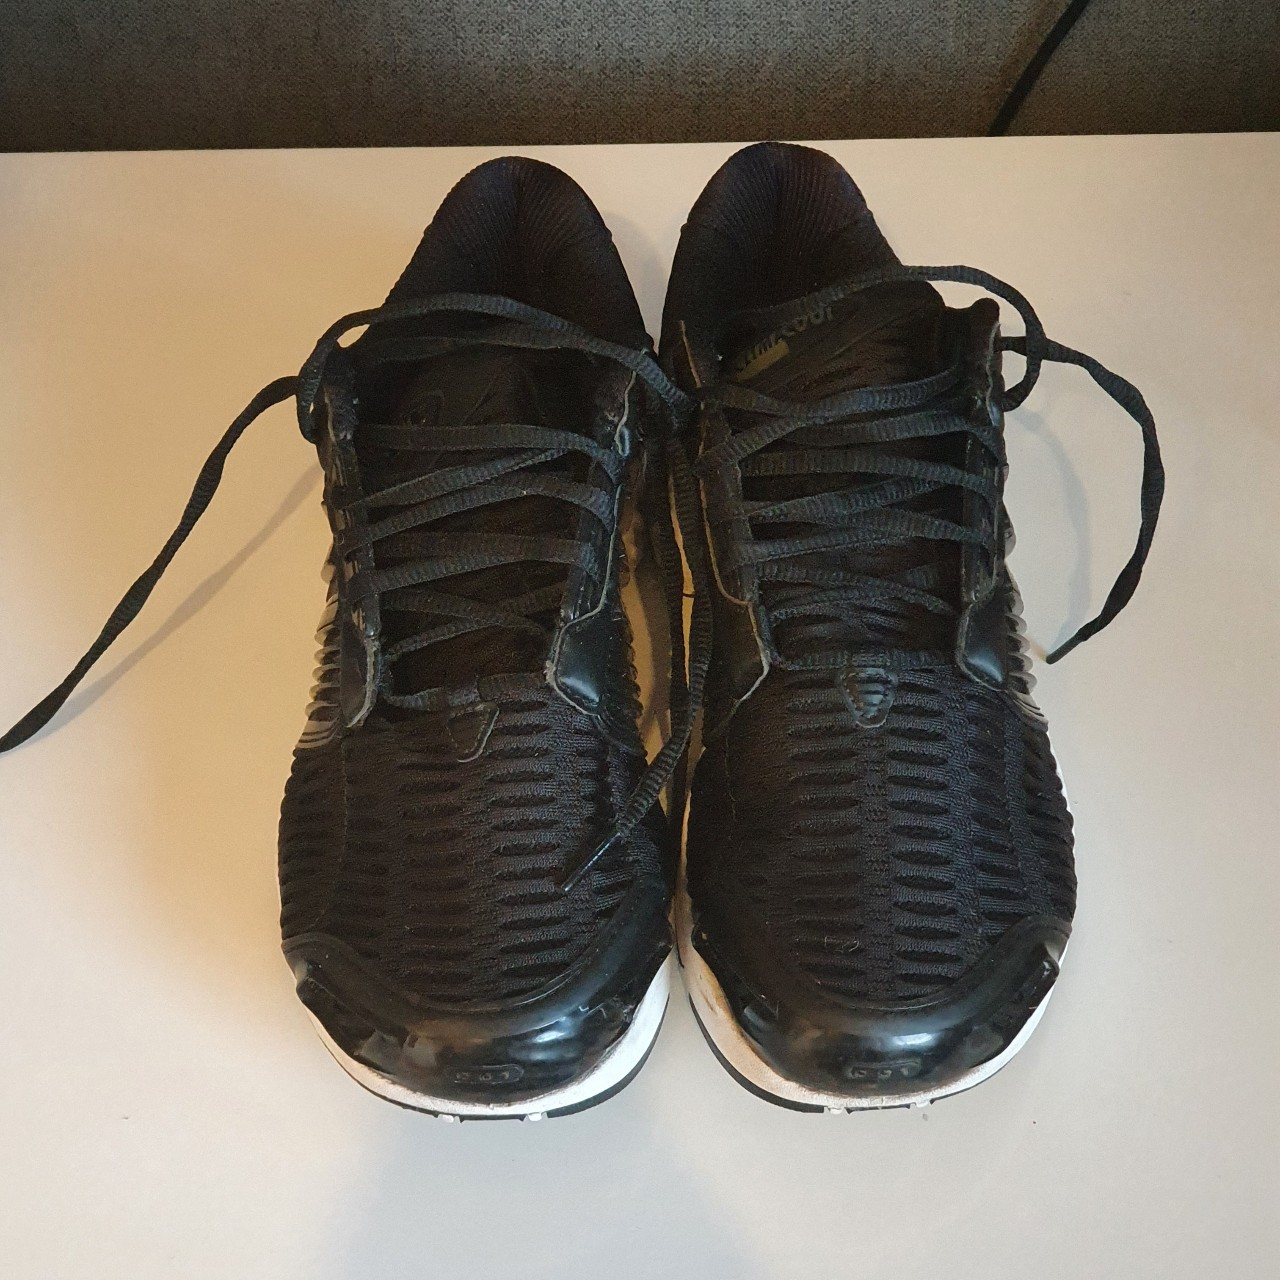 Adidas Climacool - All black with white sole, Classic...